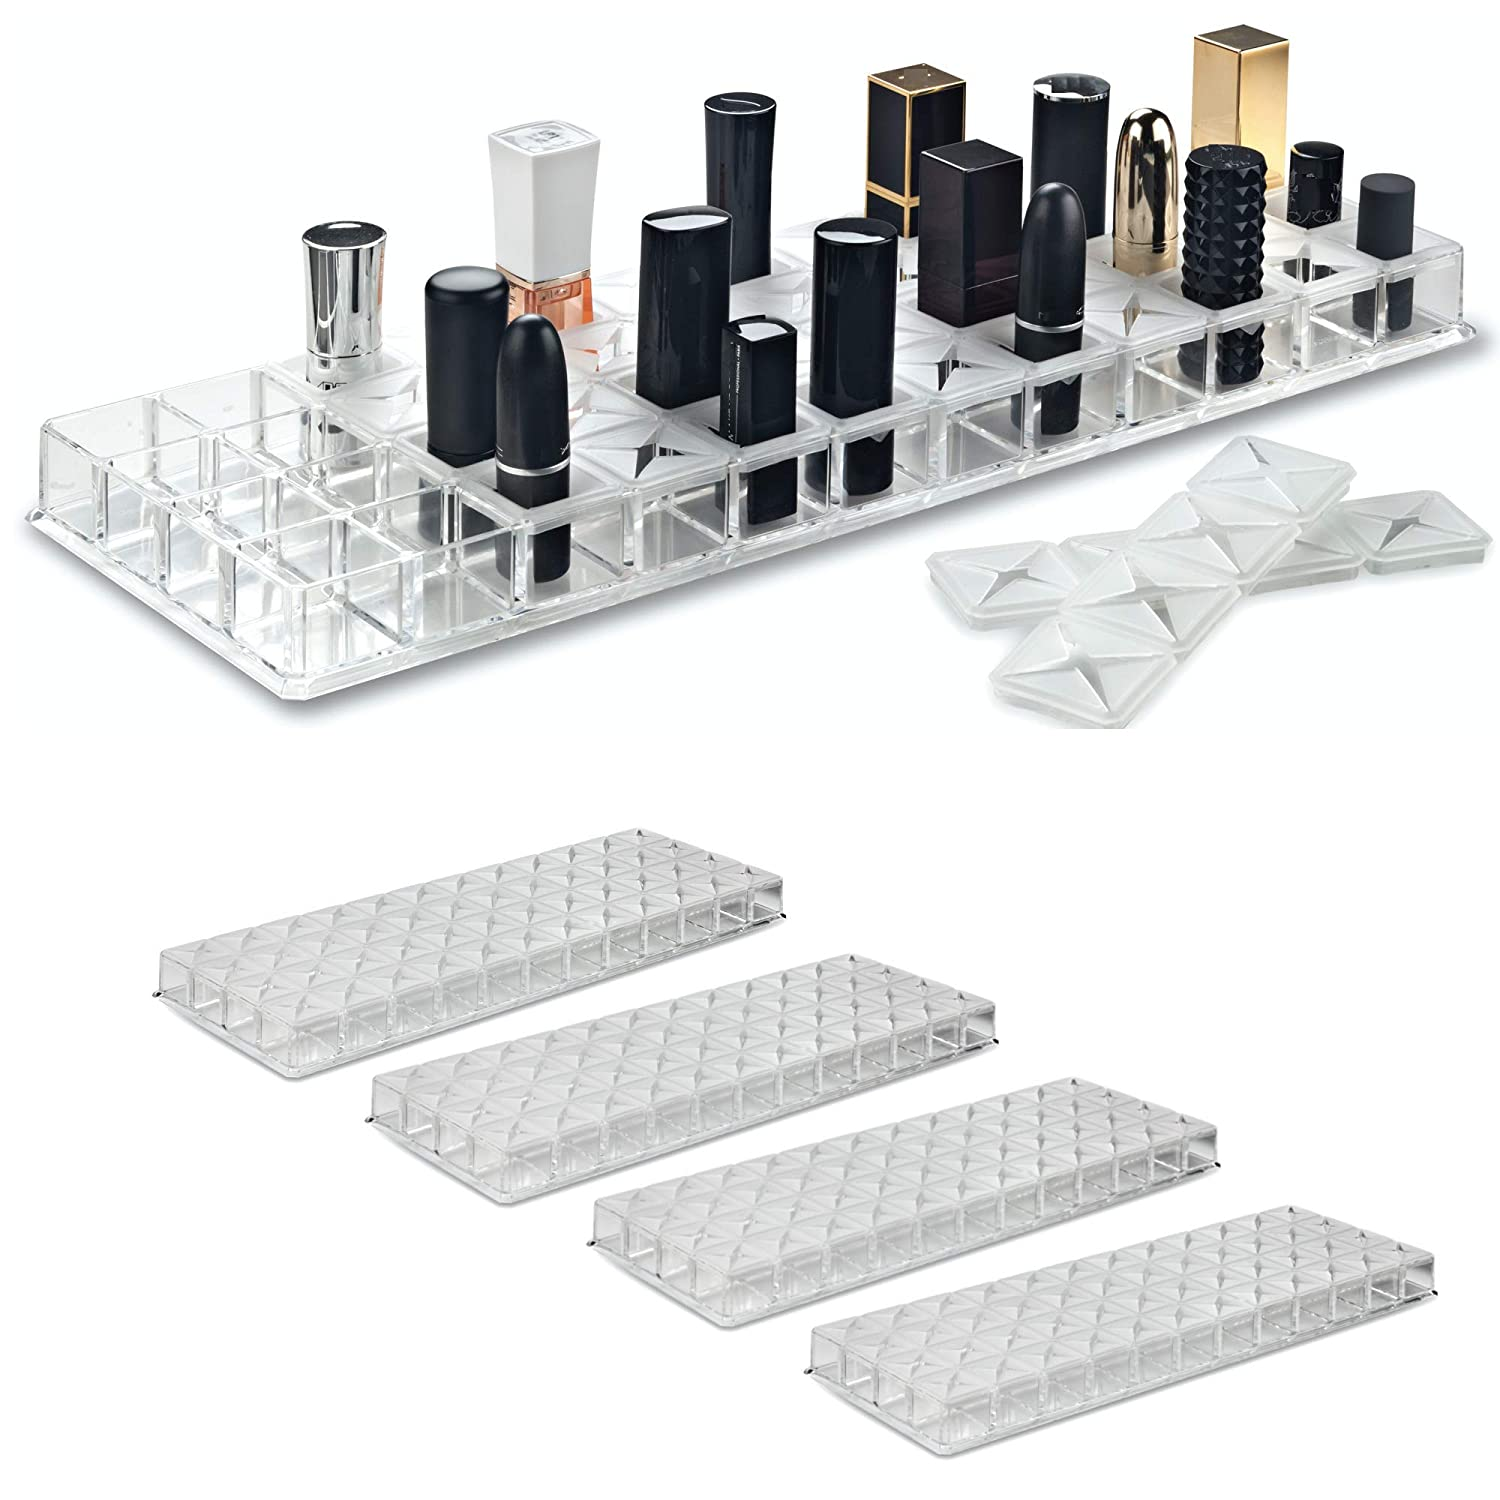 byAlegory (Set of 4) Acrylic Lipstick Makeup Organizer w/Removable Silicone Support Inserts 48 Spaces Fits Most Drawers Refillable Cosmetic Container - Clear